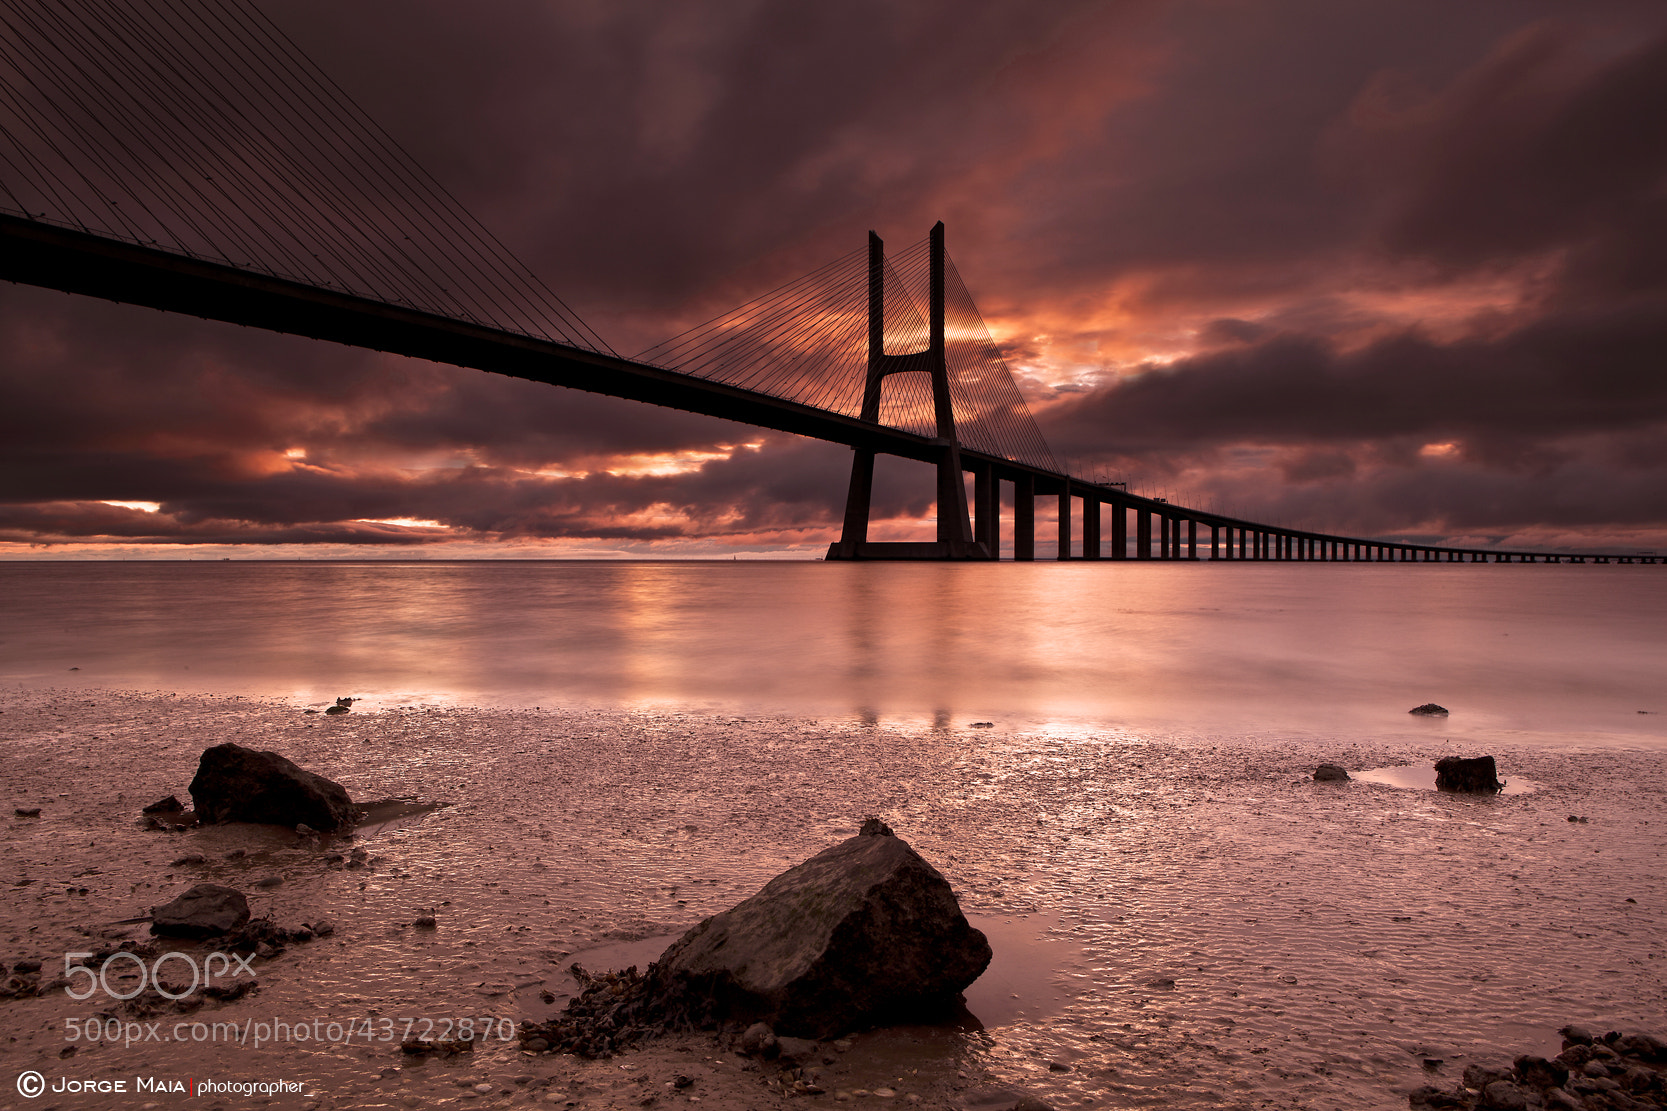 Photograph Sunrise Simphony by Jorge Maia on 500px